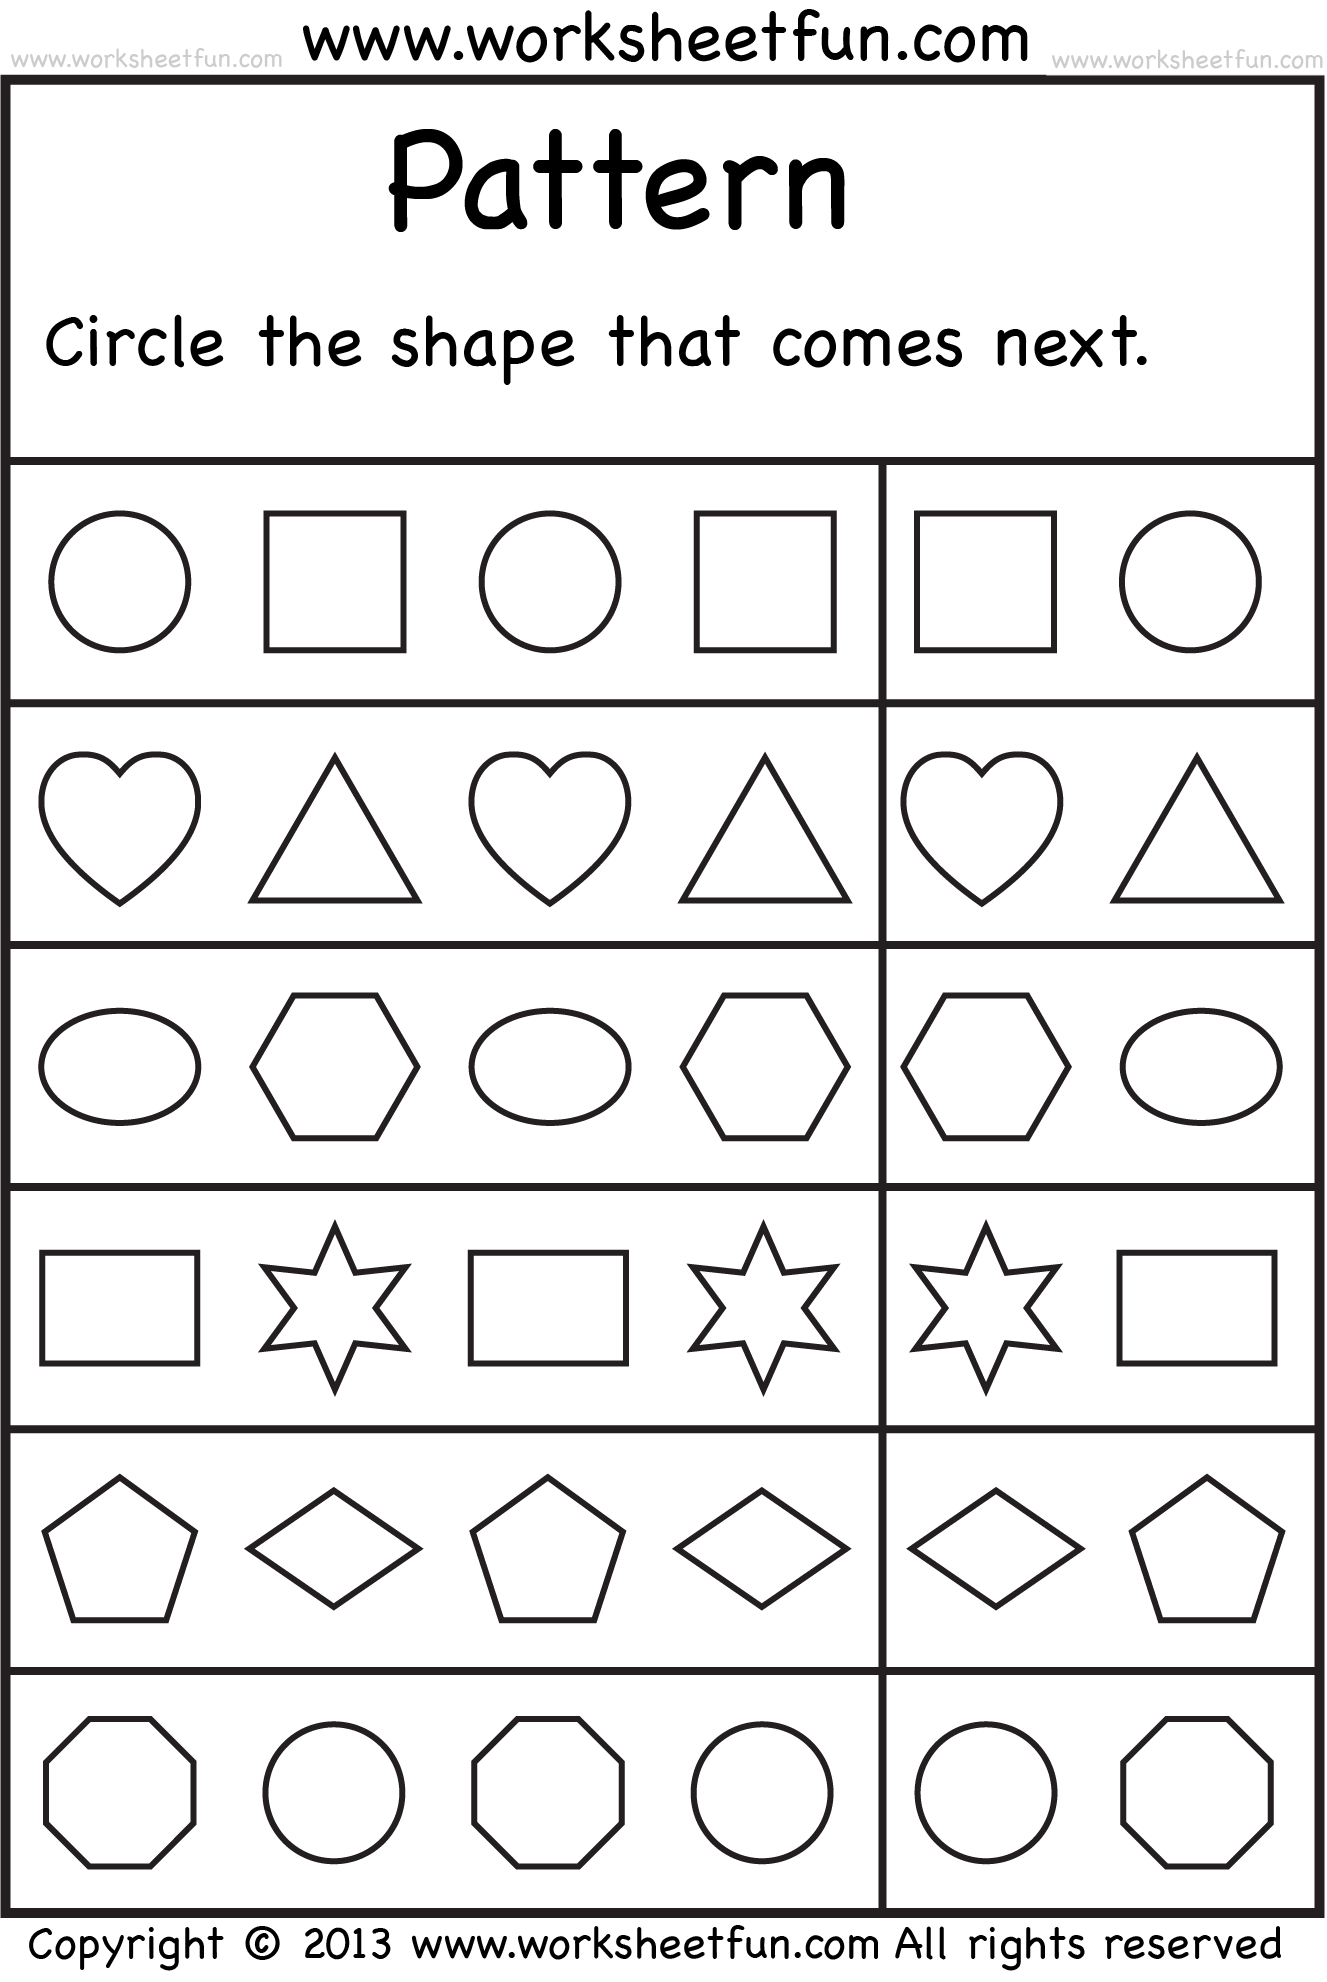 Weirdmailus  Inspiring  Images About School Worksheets On Pinterest  Number Words  With Luxury  Images About School Worksheets On Pinterest  Number Words Alphabet Worksheets And Free Printable Kindergarten Worksheets With Astonishing Personal Narrative Worksheet Also Free High School Grammar Worksheets In Addition Quadratic Sequences Worksheet And Coloring Worksheets Printable As Well As Decimal Worksheets For Th Grade Additionally Addition Worksheet With Regrouping From Pinterestcom With Weirdmailus  Luxury  Images About School Worksheets On Pinterest  Number Words  With Astonishing  Images About School Worksheets On Pinterest  Number Words Alphabet Worksheets And Free Printable Kindergarten Worksheets And Inspiring Personal Narrative Worksheet Also Free High School Grammar Worksheets In Addition Quadratic Sequences Worksheet From Pinterestcom